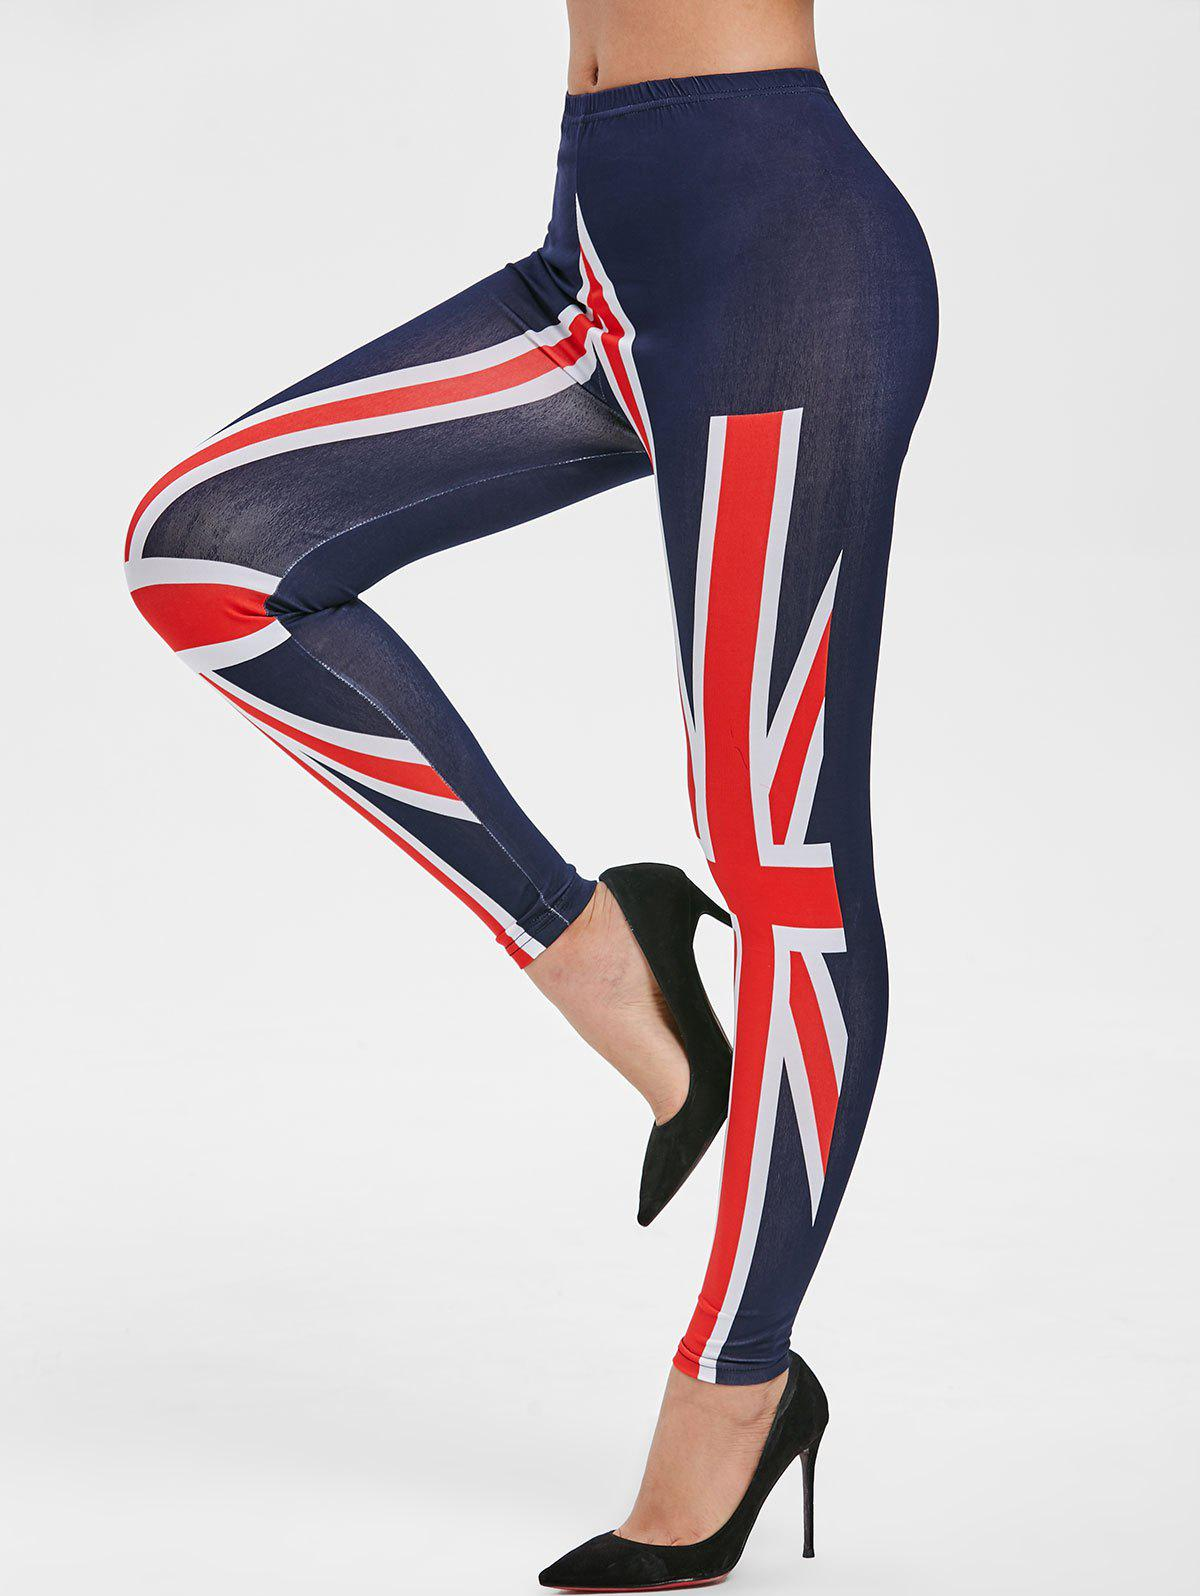 Store Ninth Flag Print Skinny Leggings